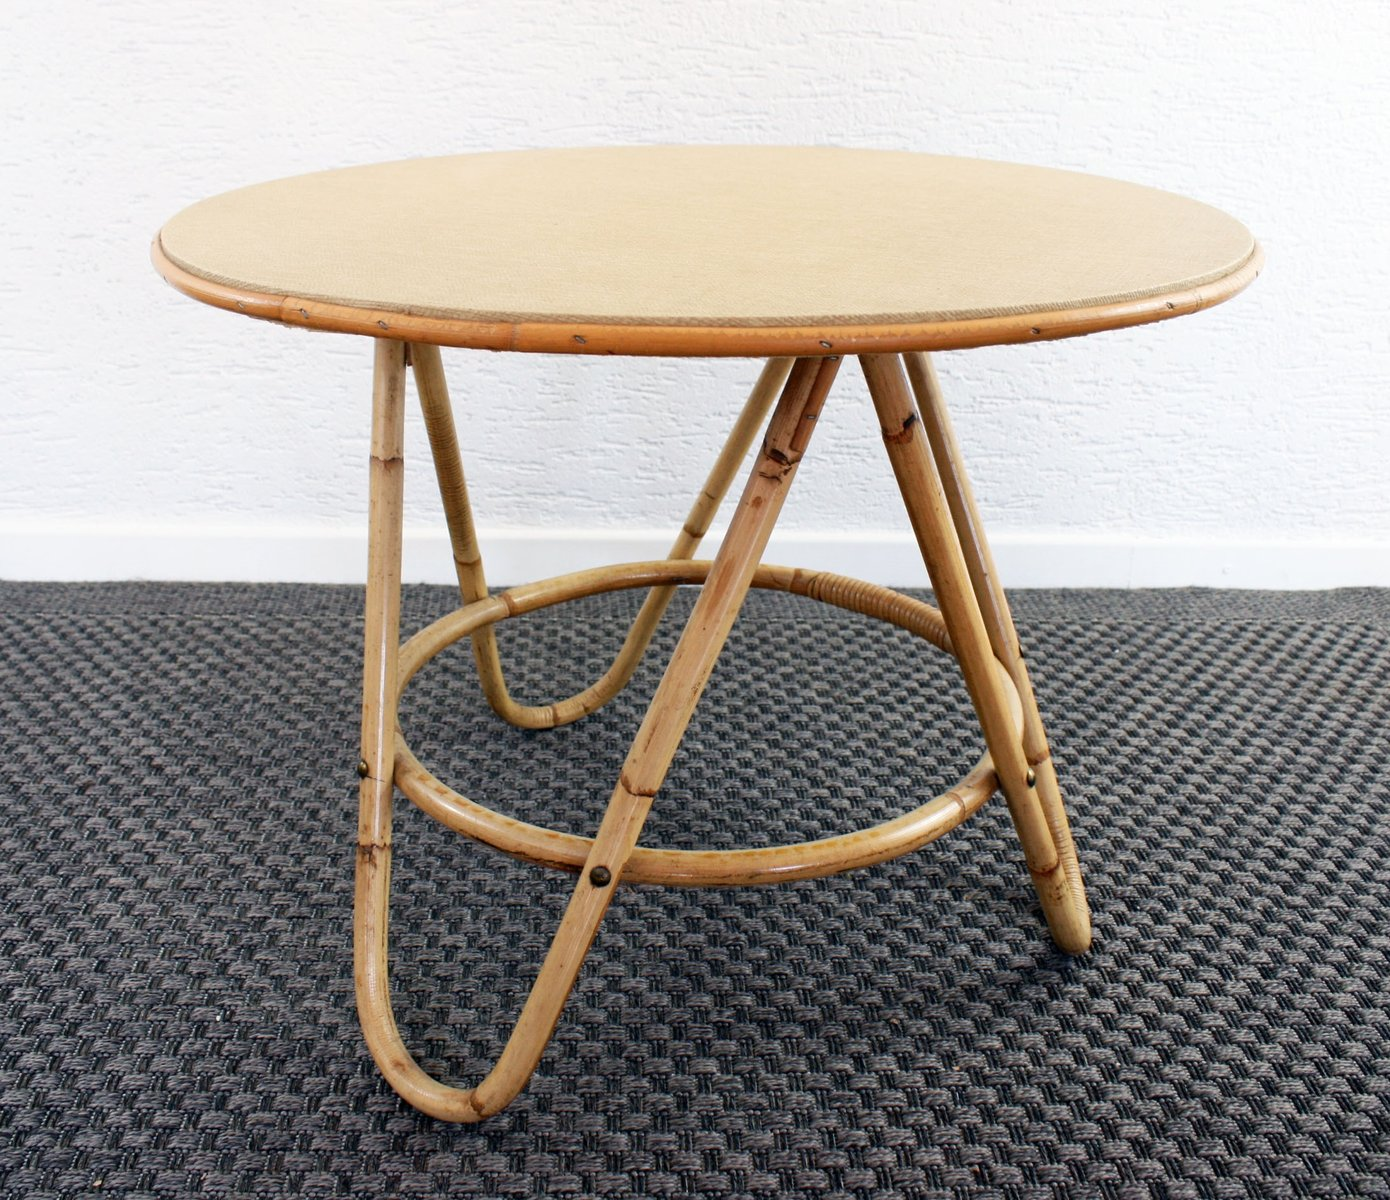 Vintage Casual Coffee Tables: Vintage Round Rattan Coffee Table For Sale At Pamono